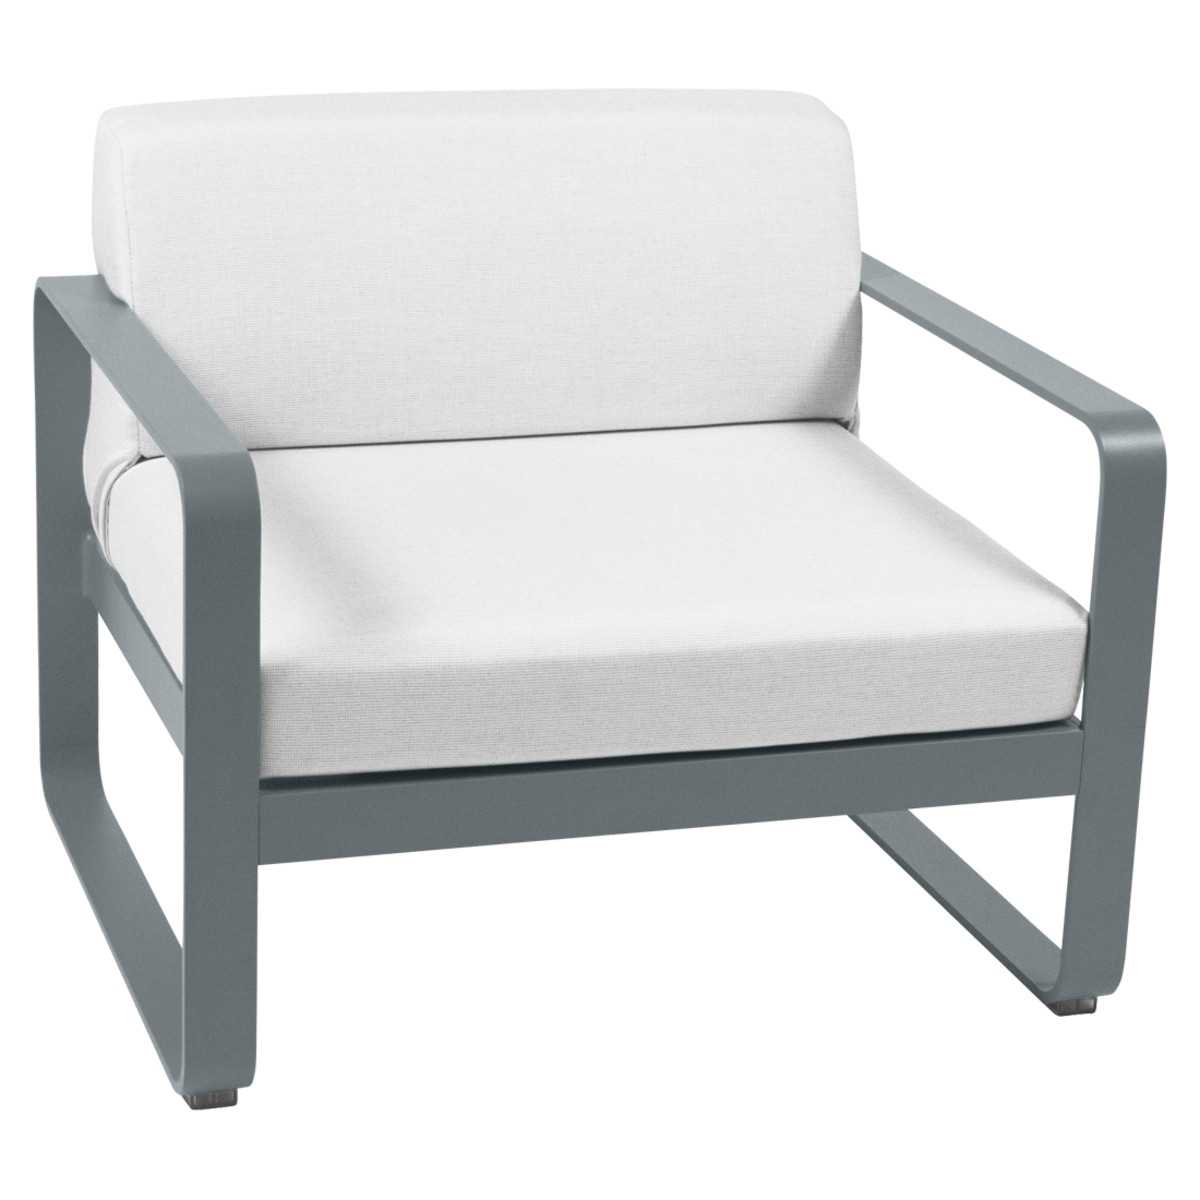 BELLEVIE / ARMCHAIR (OFF-WHITE CUSHION)